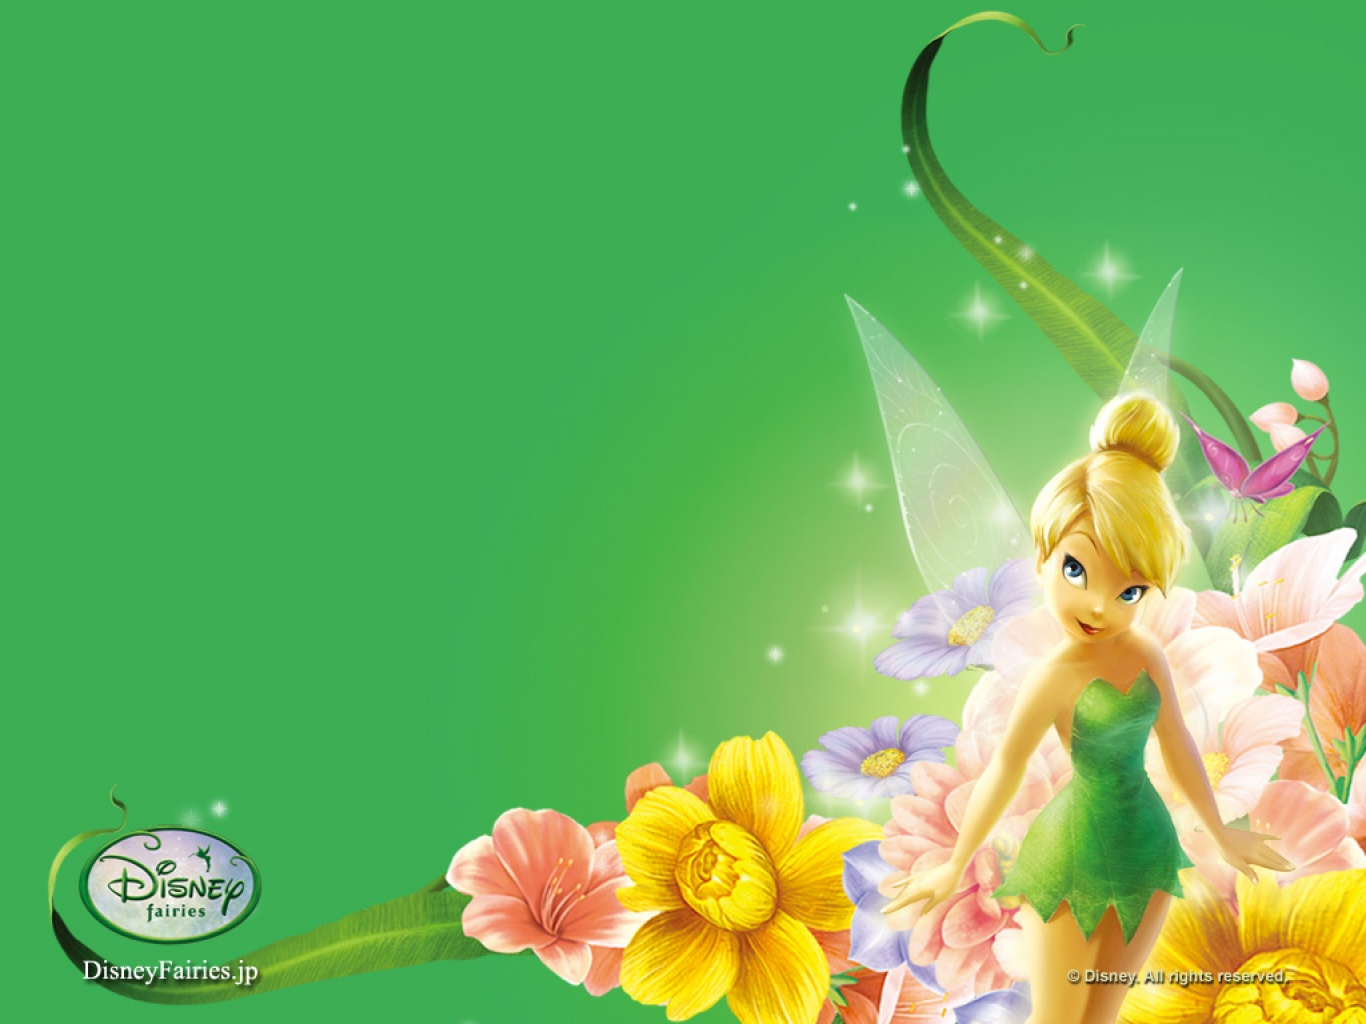 http://4.bp.blogspot.com/-JwCdF0MND98/TjDTgw3YBKI/AAAAAAAAAEE/jfeOn2eNJWk/s1600/Wallpaper+free+download+Tinkerbell+green+background.jpg